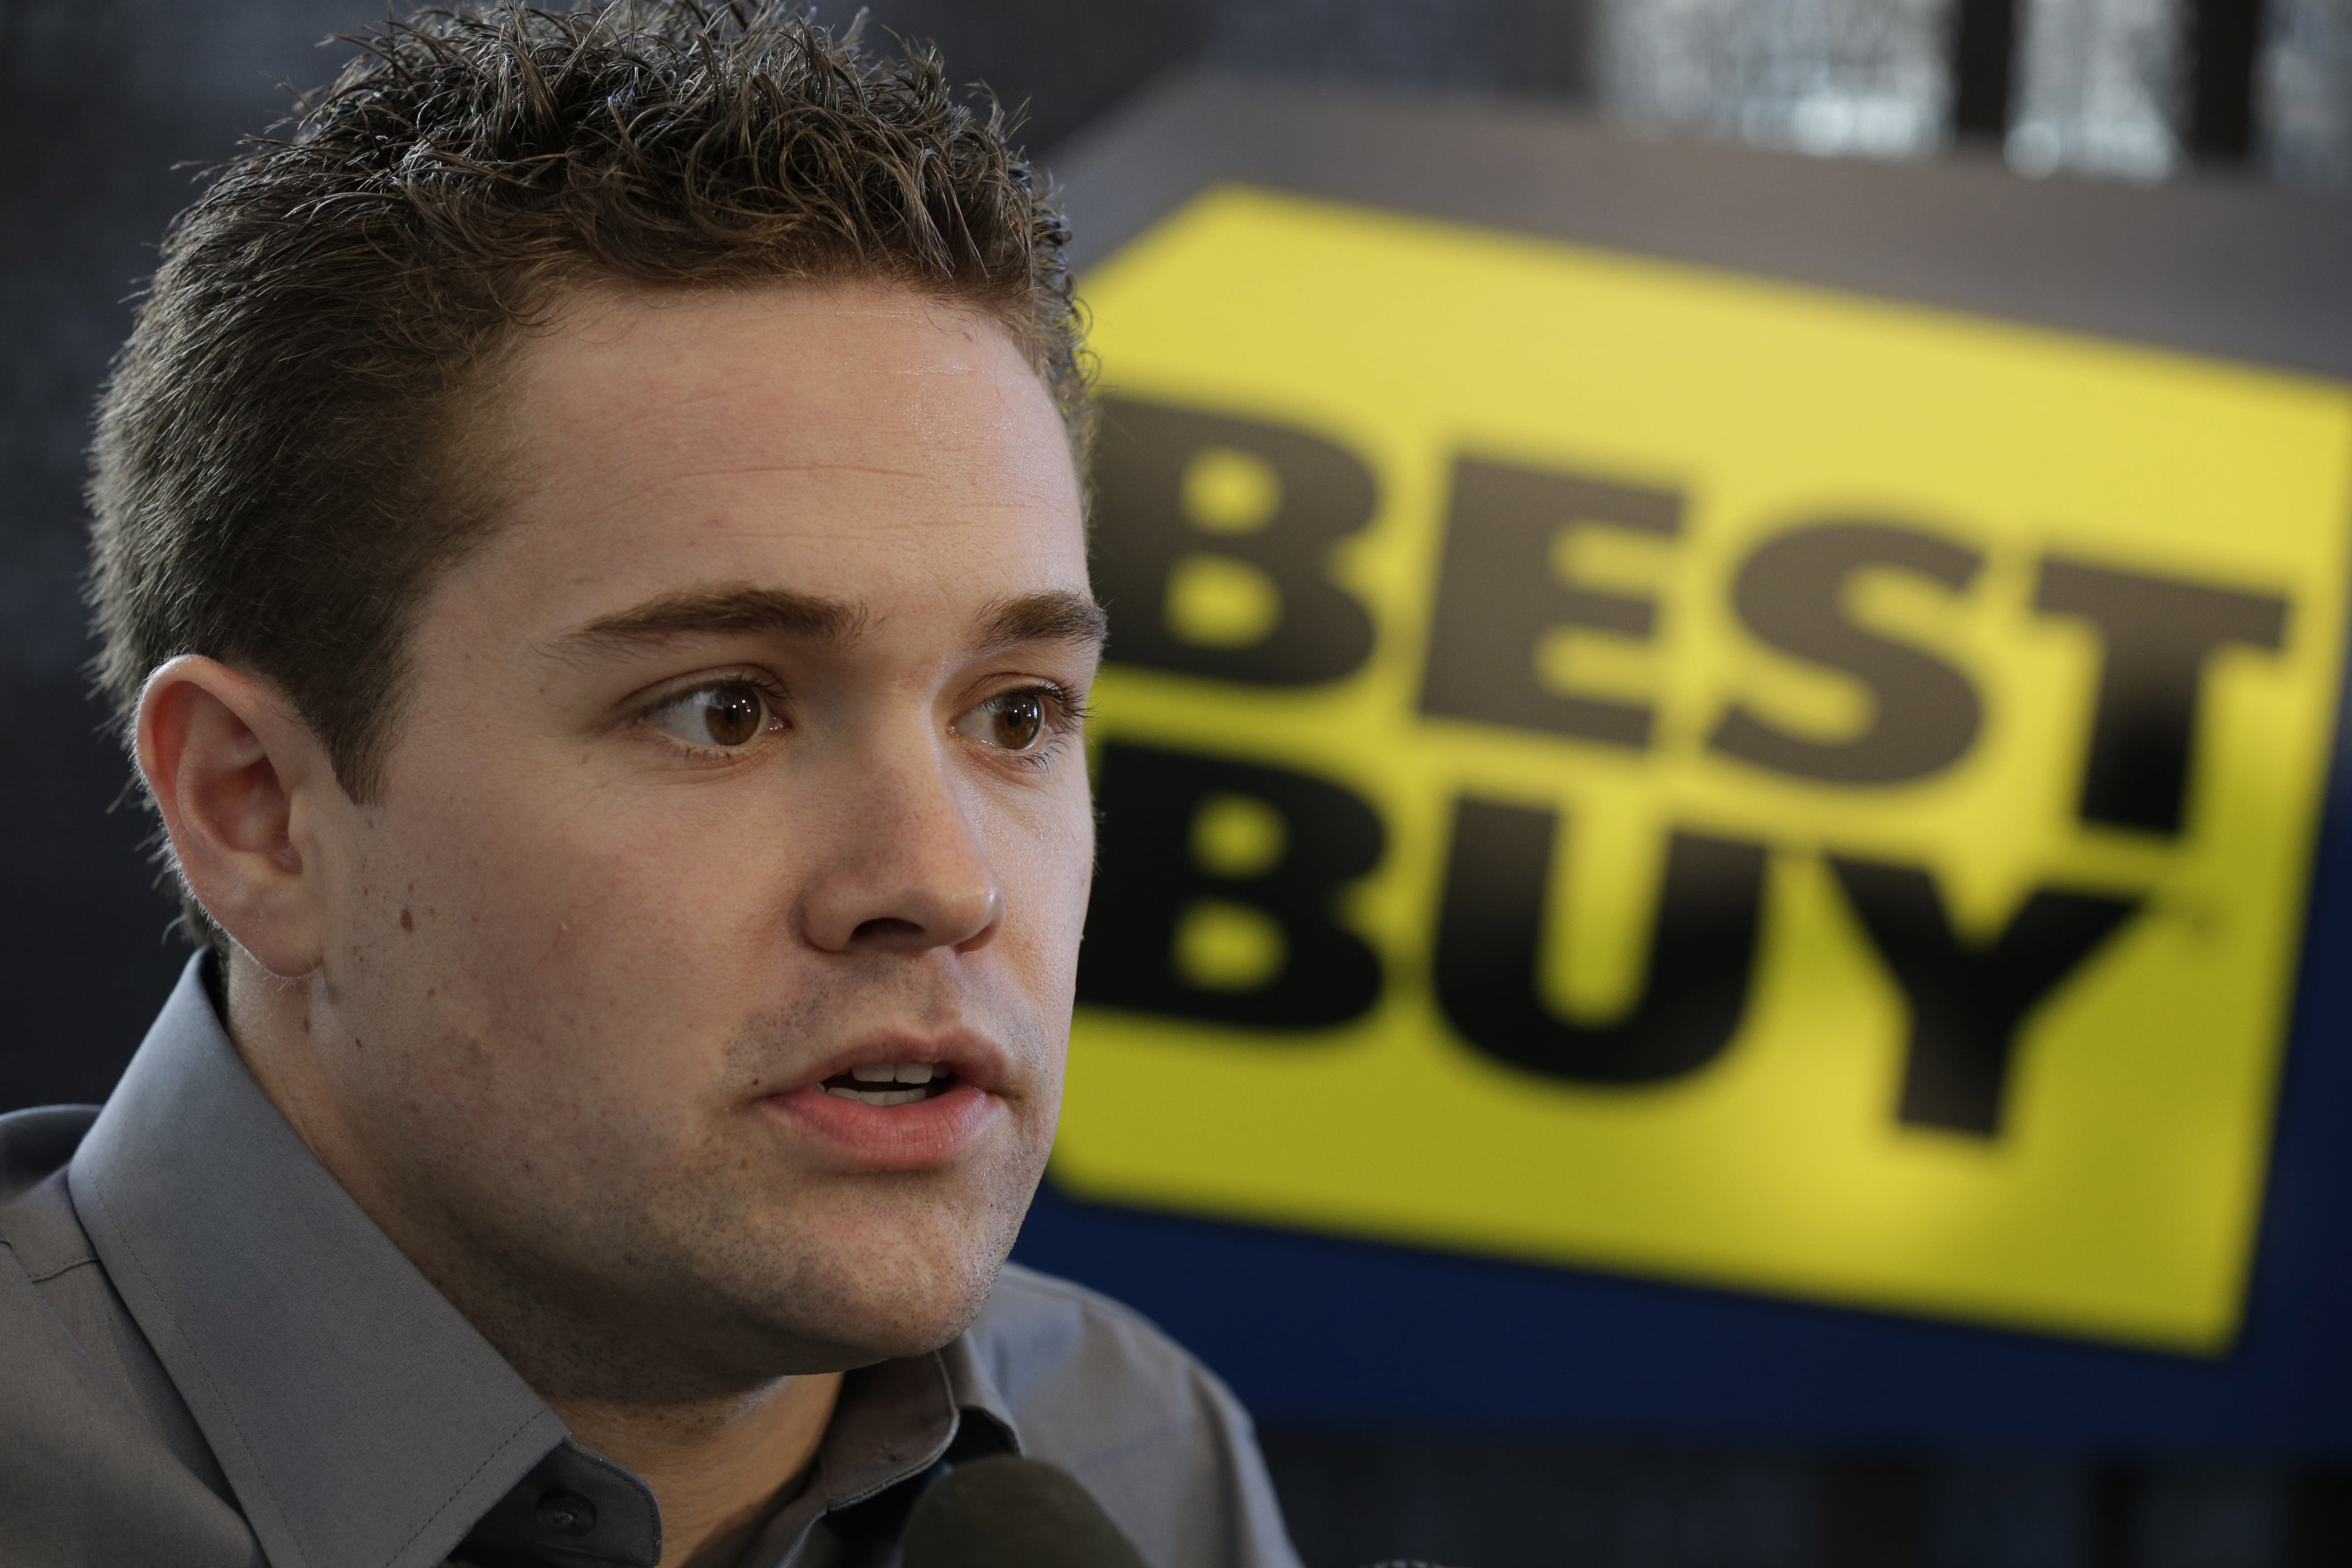 Driver Ricky Stenhouse Jr. talks to the media at a news conference during the NASCAR Sprint Cup Media Tour in Charlotte, N.C., Thursday, Jan. 24, 2013. (AP Photo/Chuck Burton)